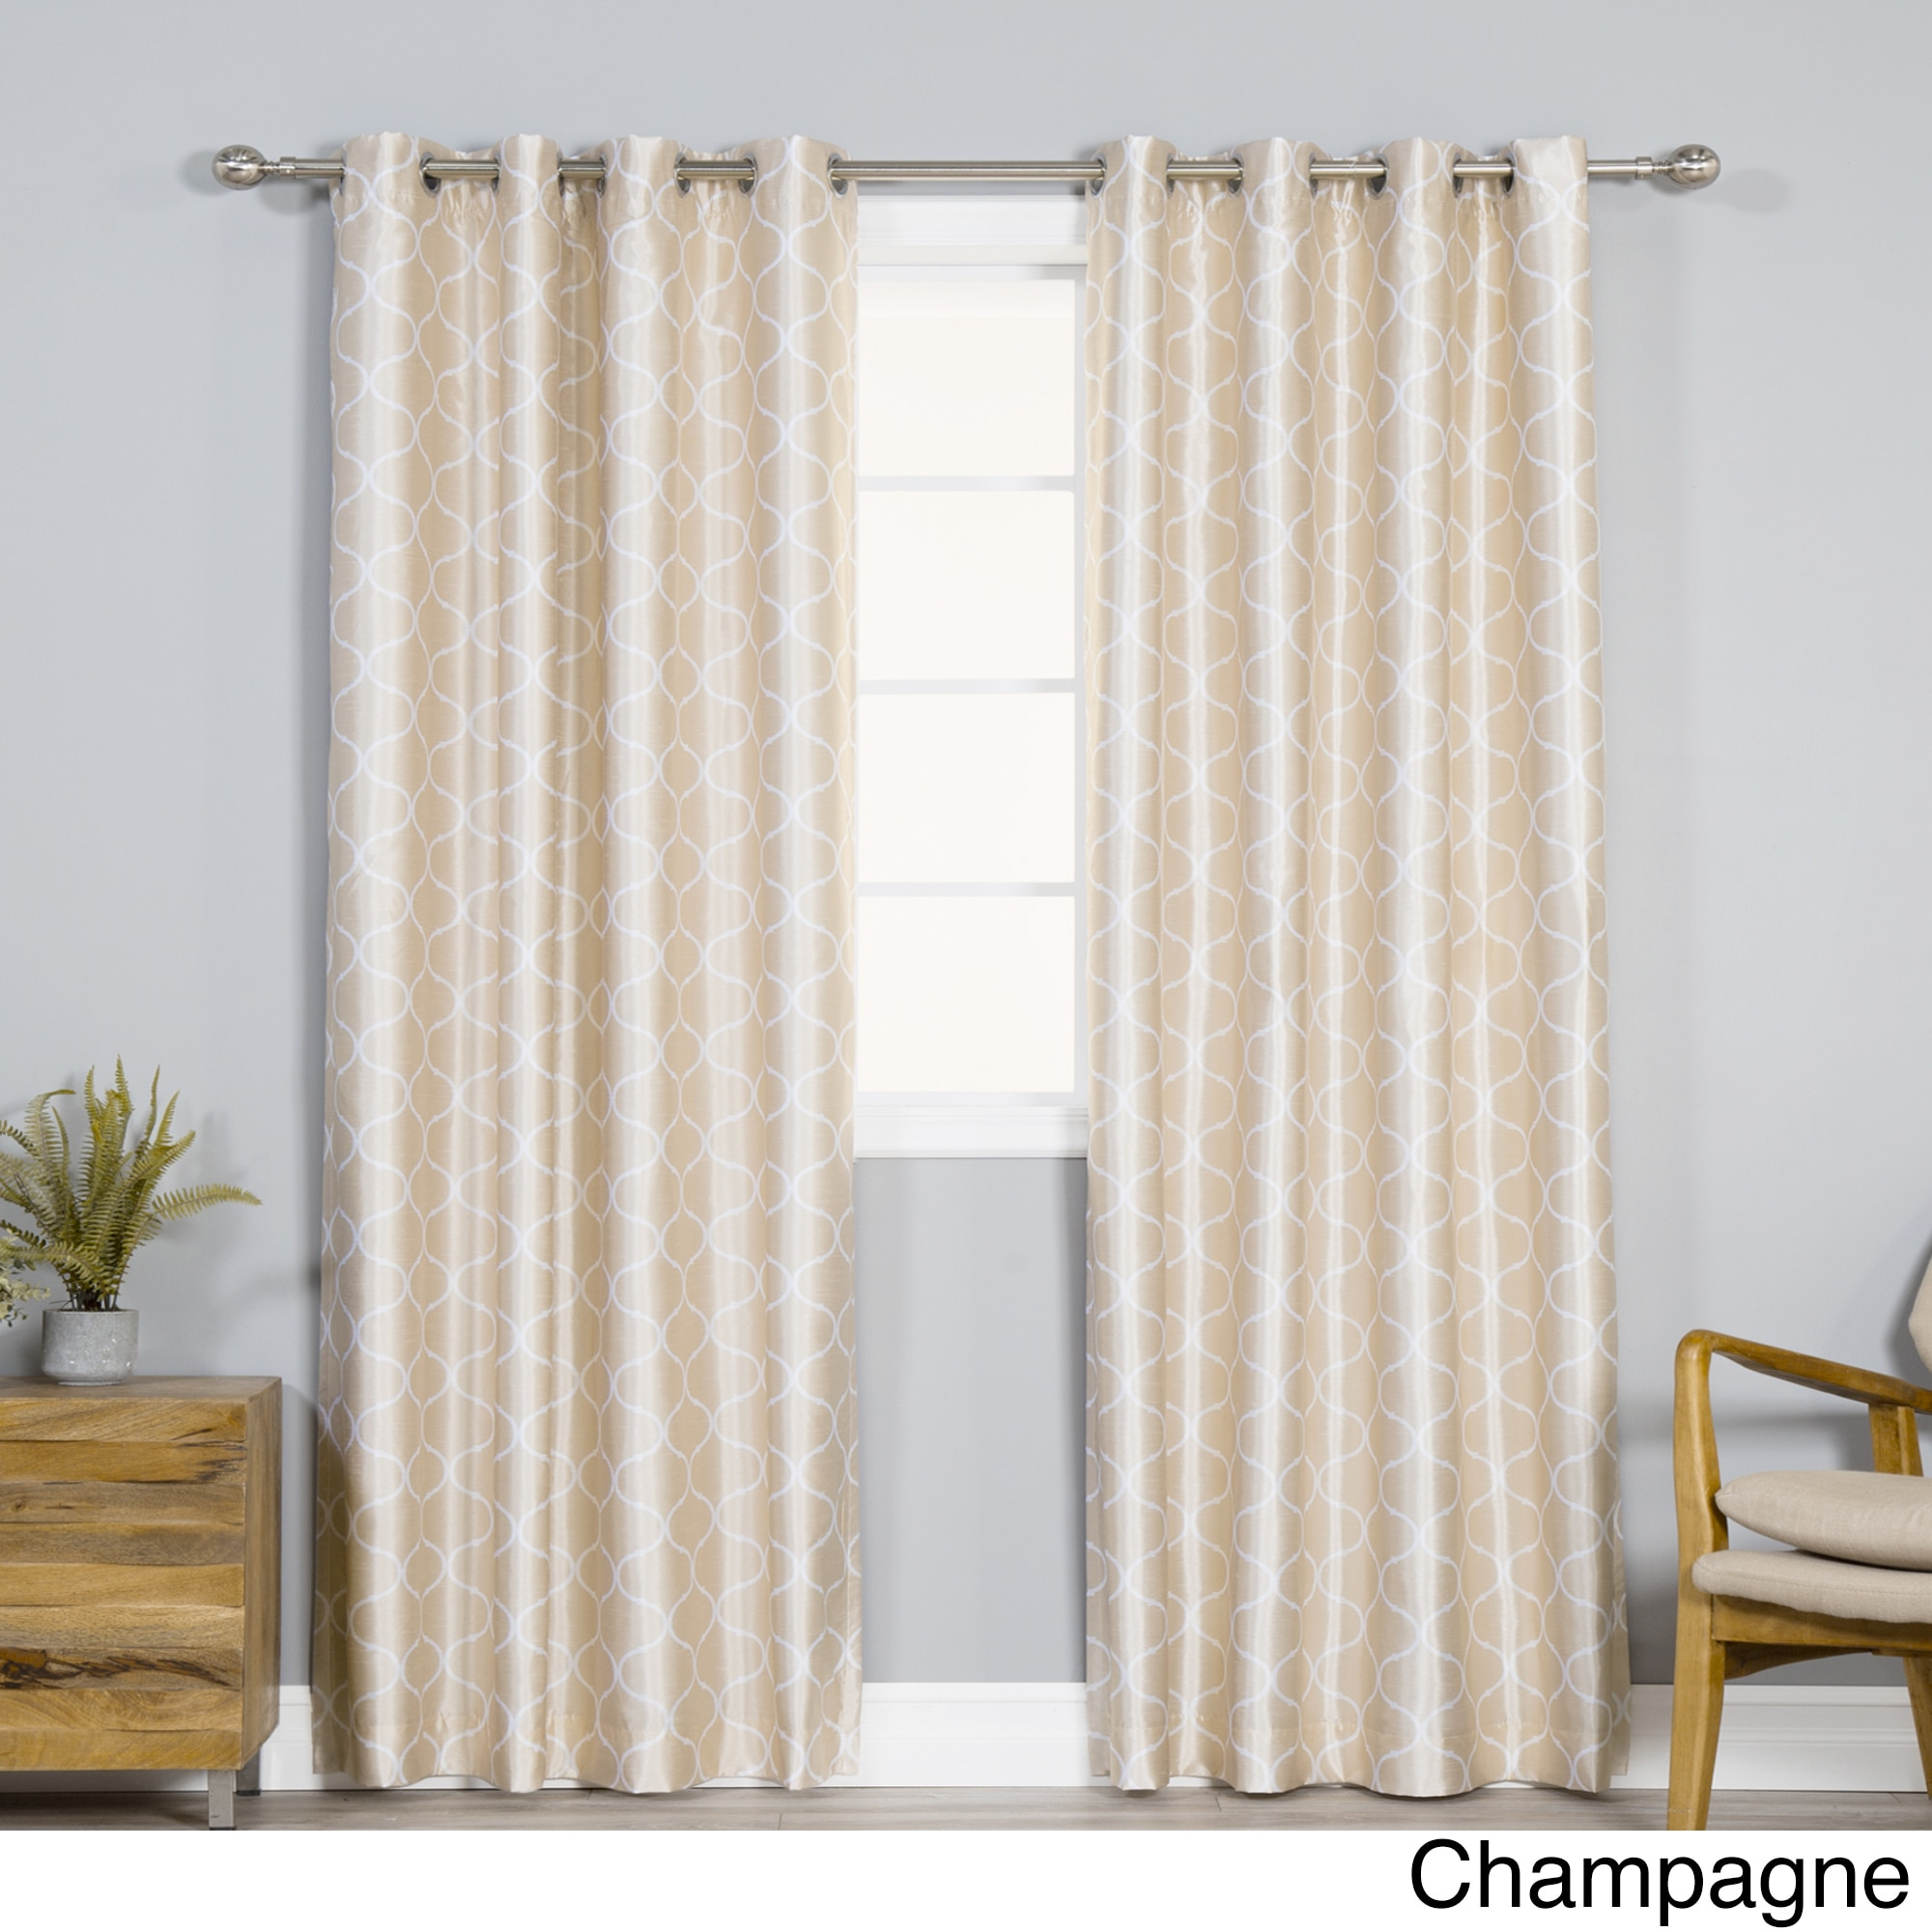 Faux Silk Curtains Aurora Home Faux Silk Quatrefoil Blackout Curtains 52 X 84